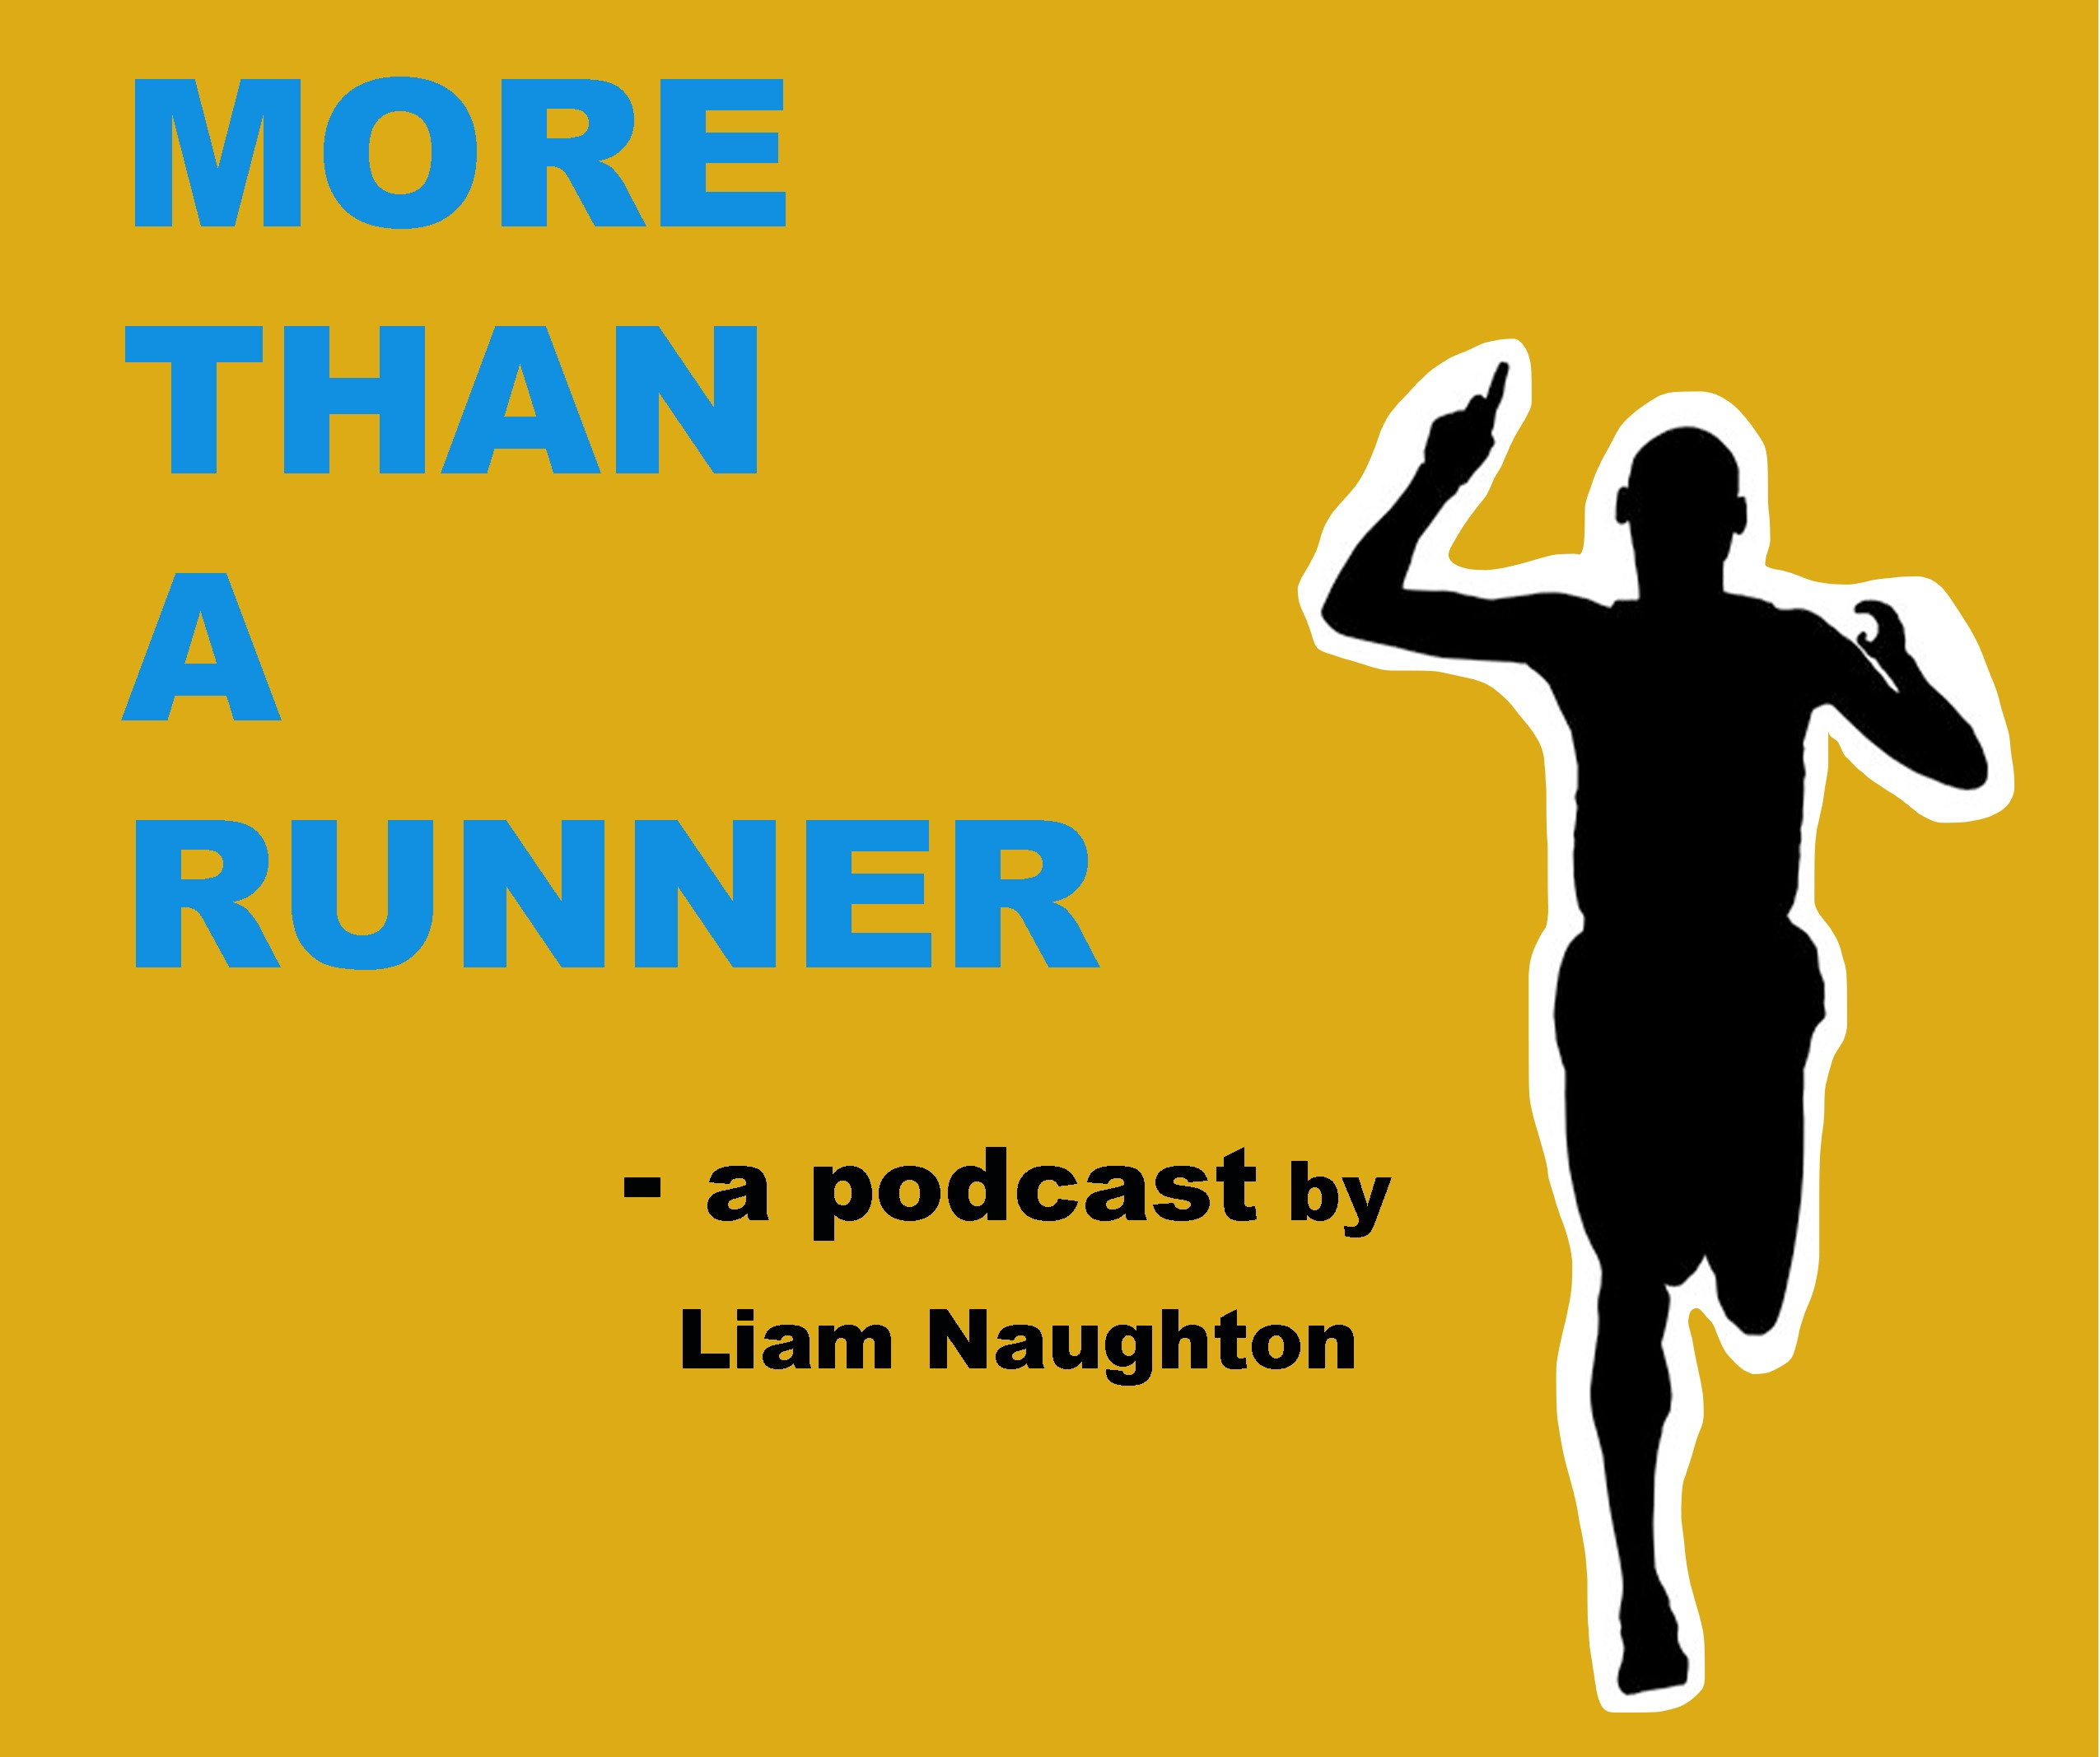 More than a runner podcast